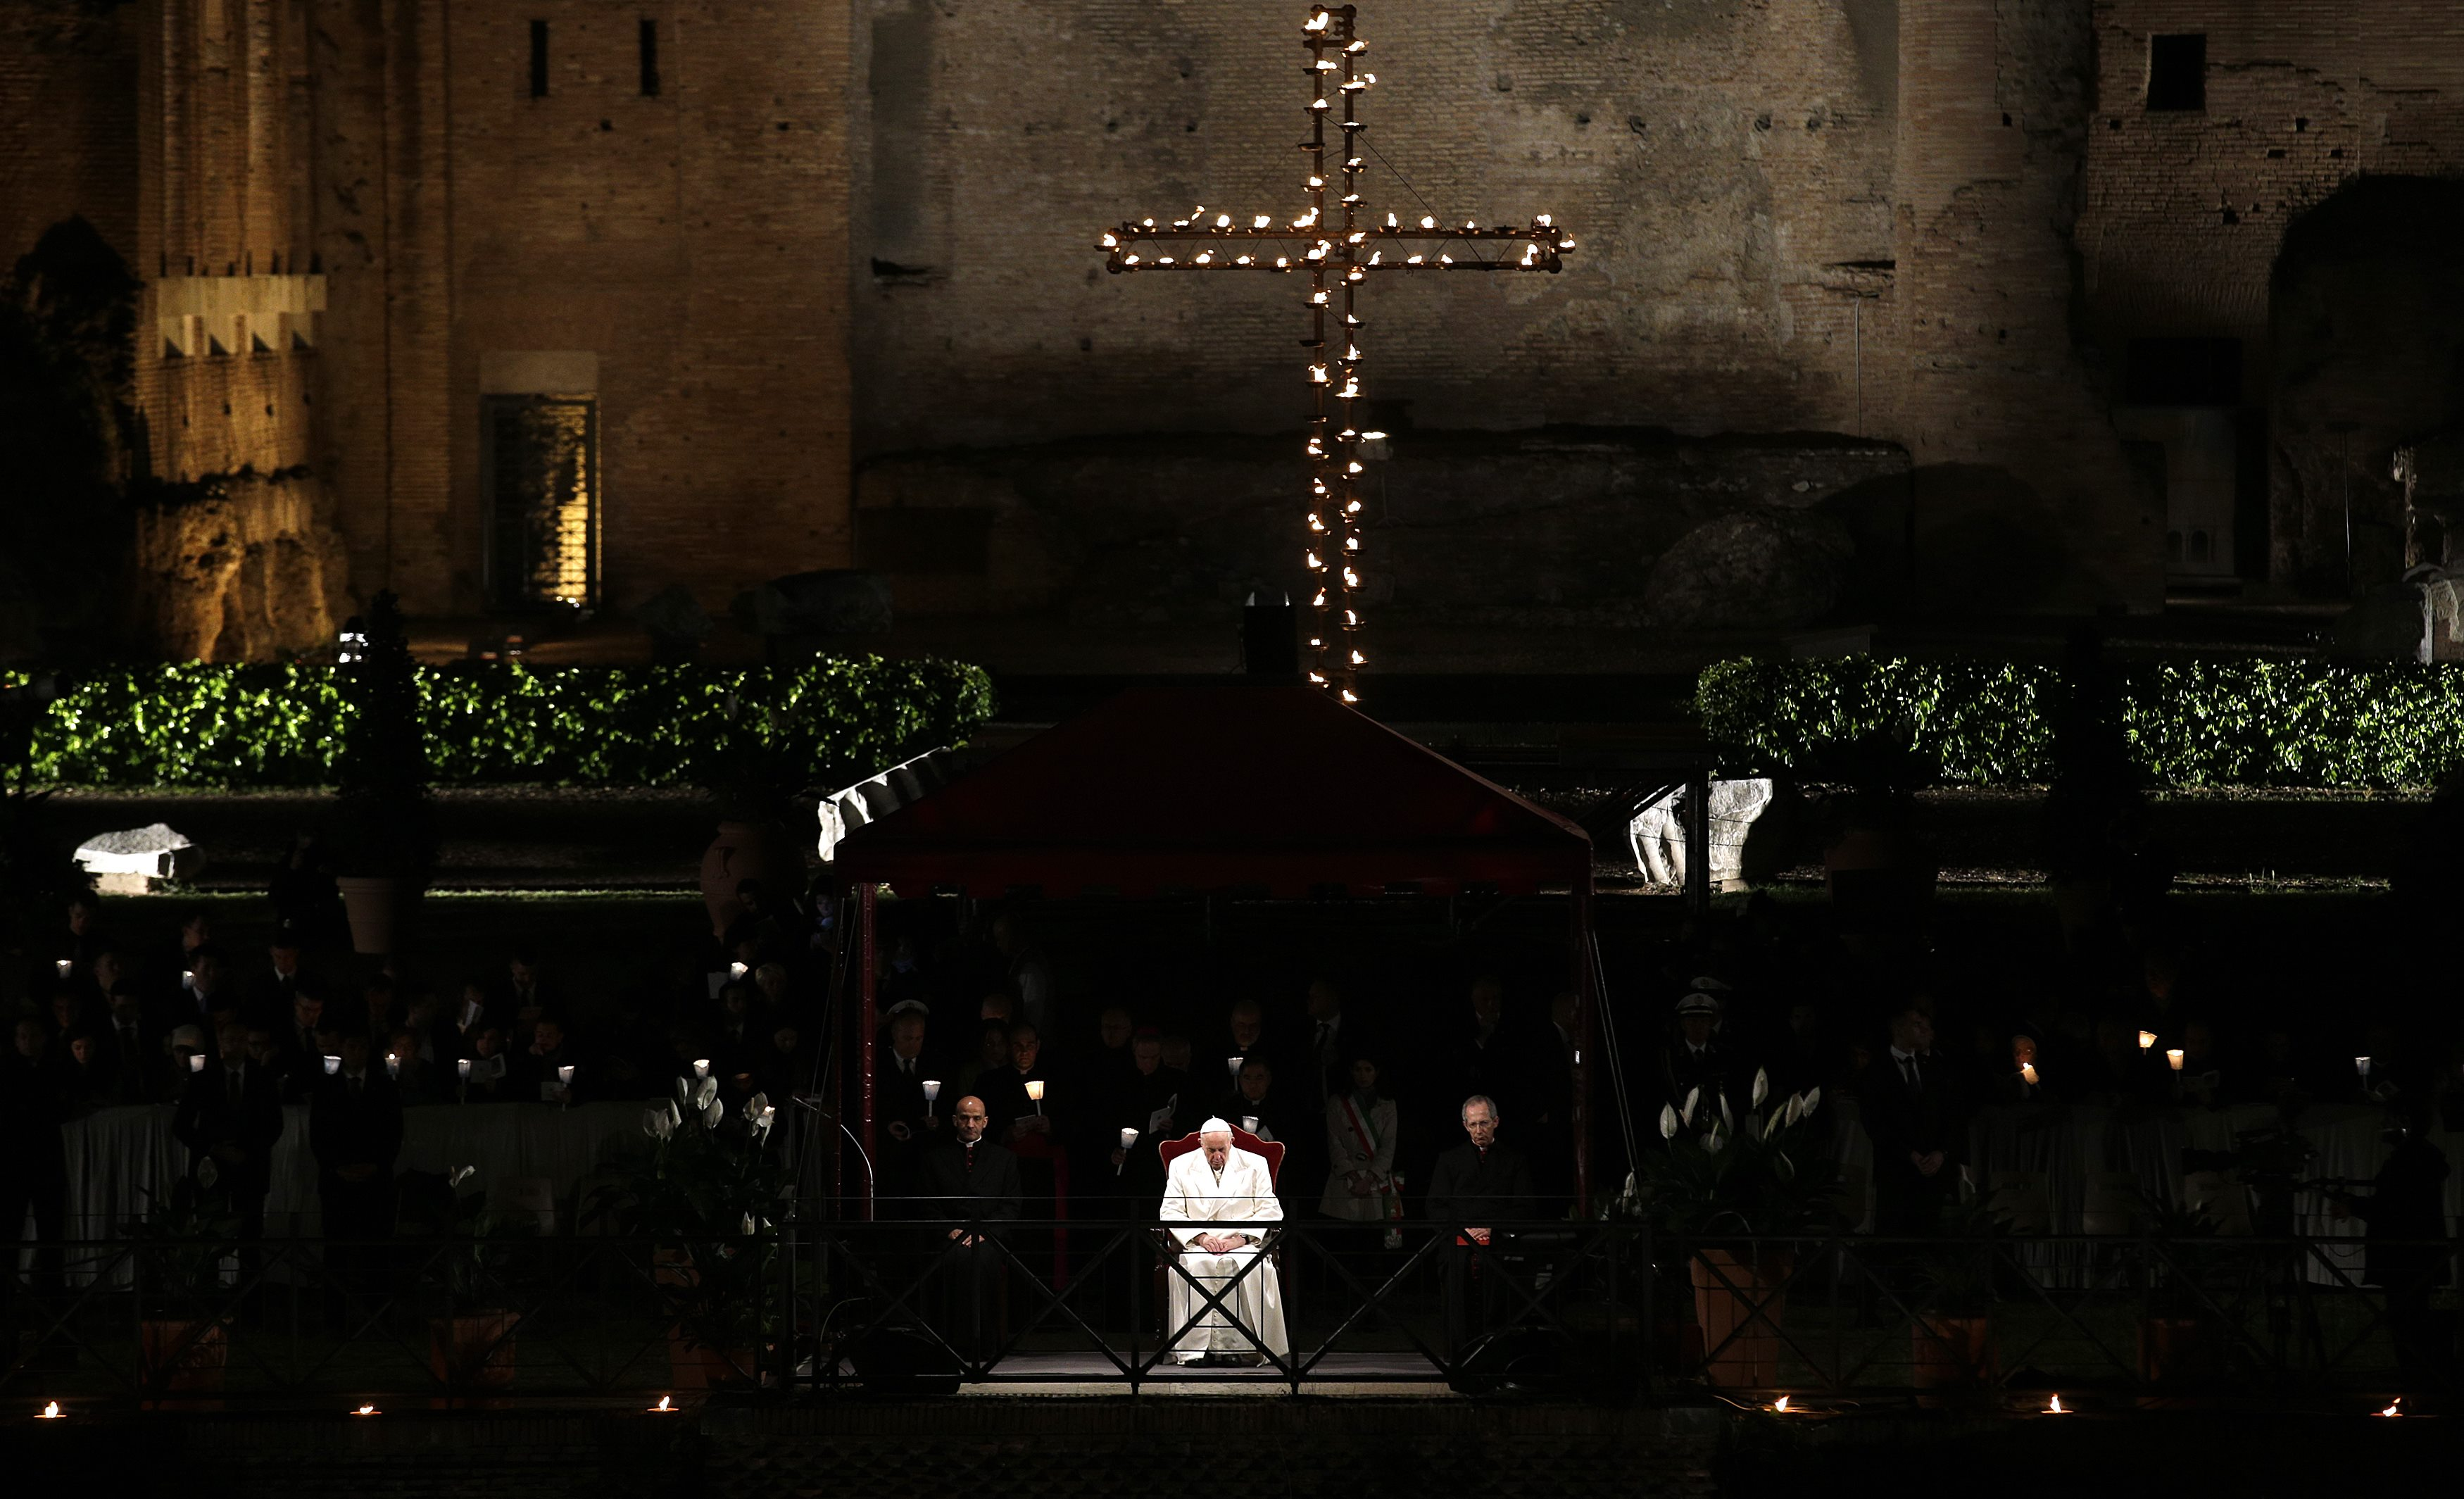 Pope Francis leads the Via Crucis (Way of the Cross) procession during Good Friday celebrations in front of the Colosseum in Rome, Italy, April 14, 2017. REUTERS/Max Rossi